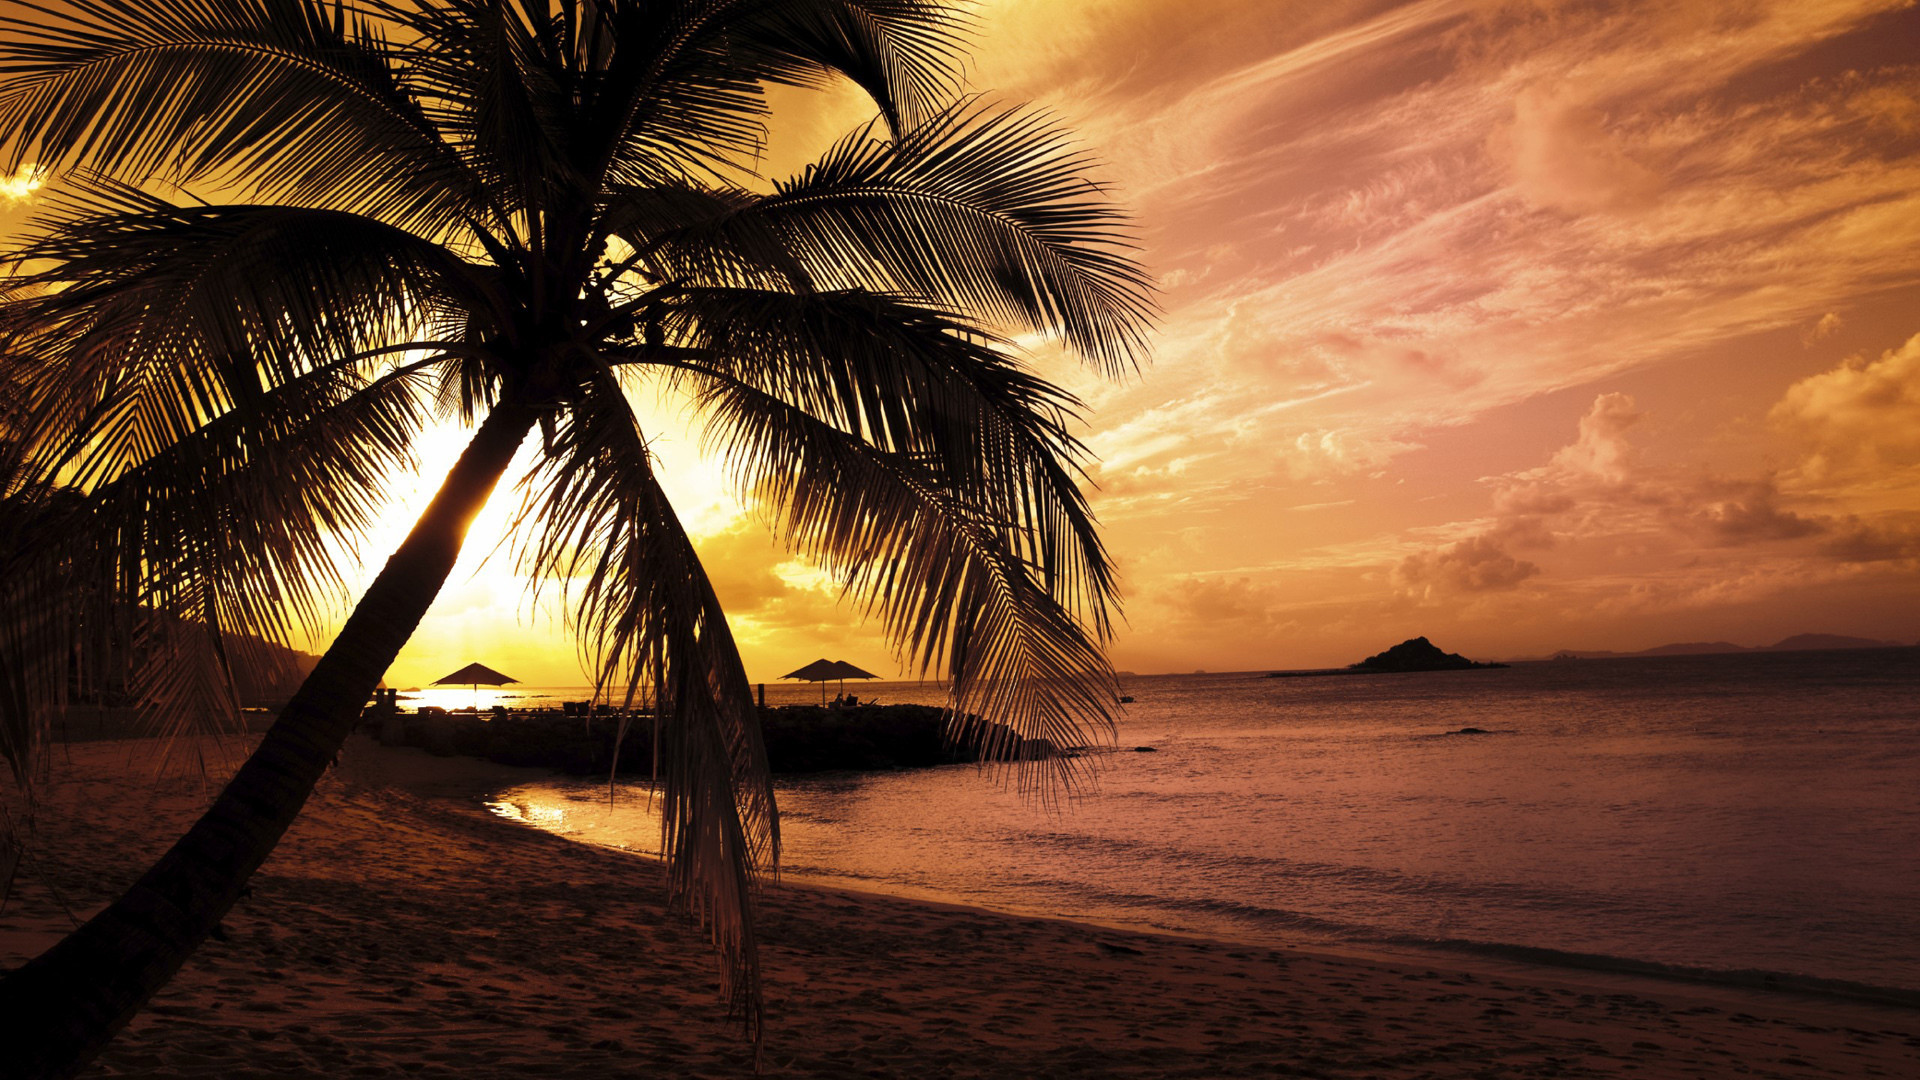 Full HD Nature Wallpapers 1080p Desktop with Sunset in Beach